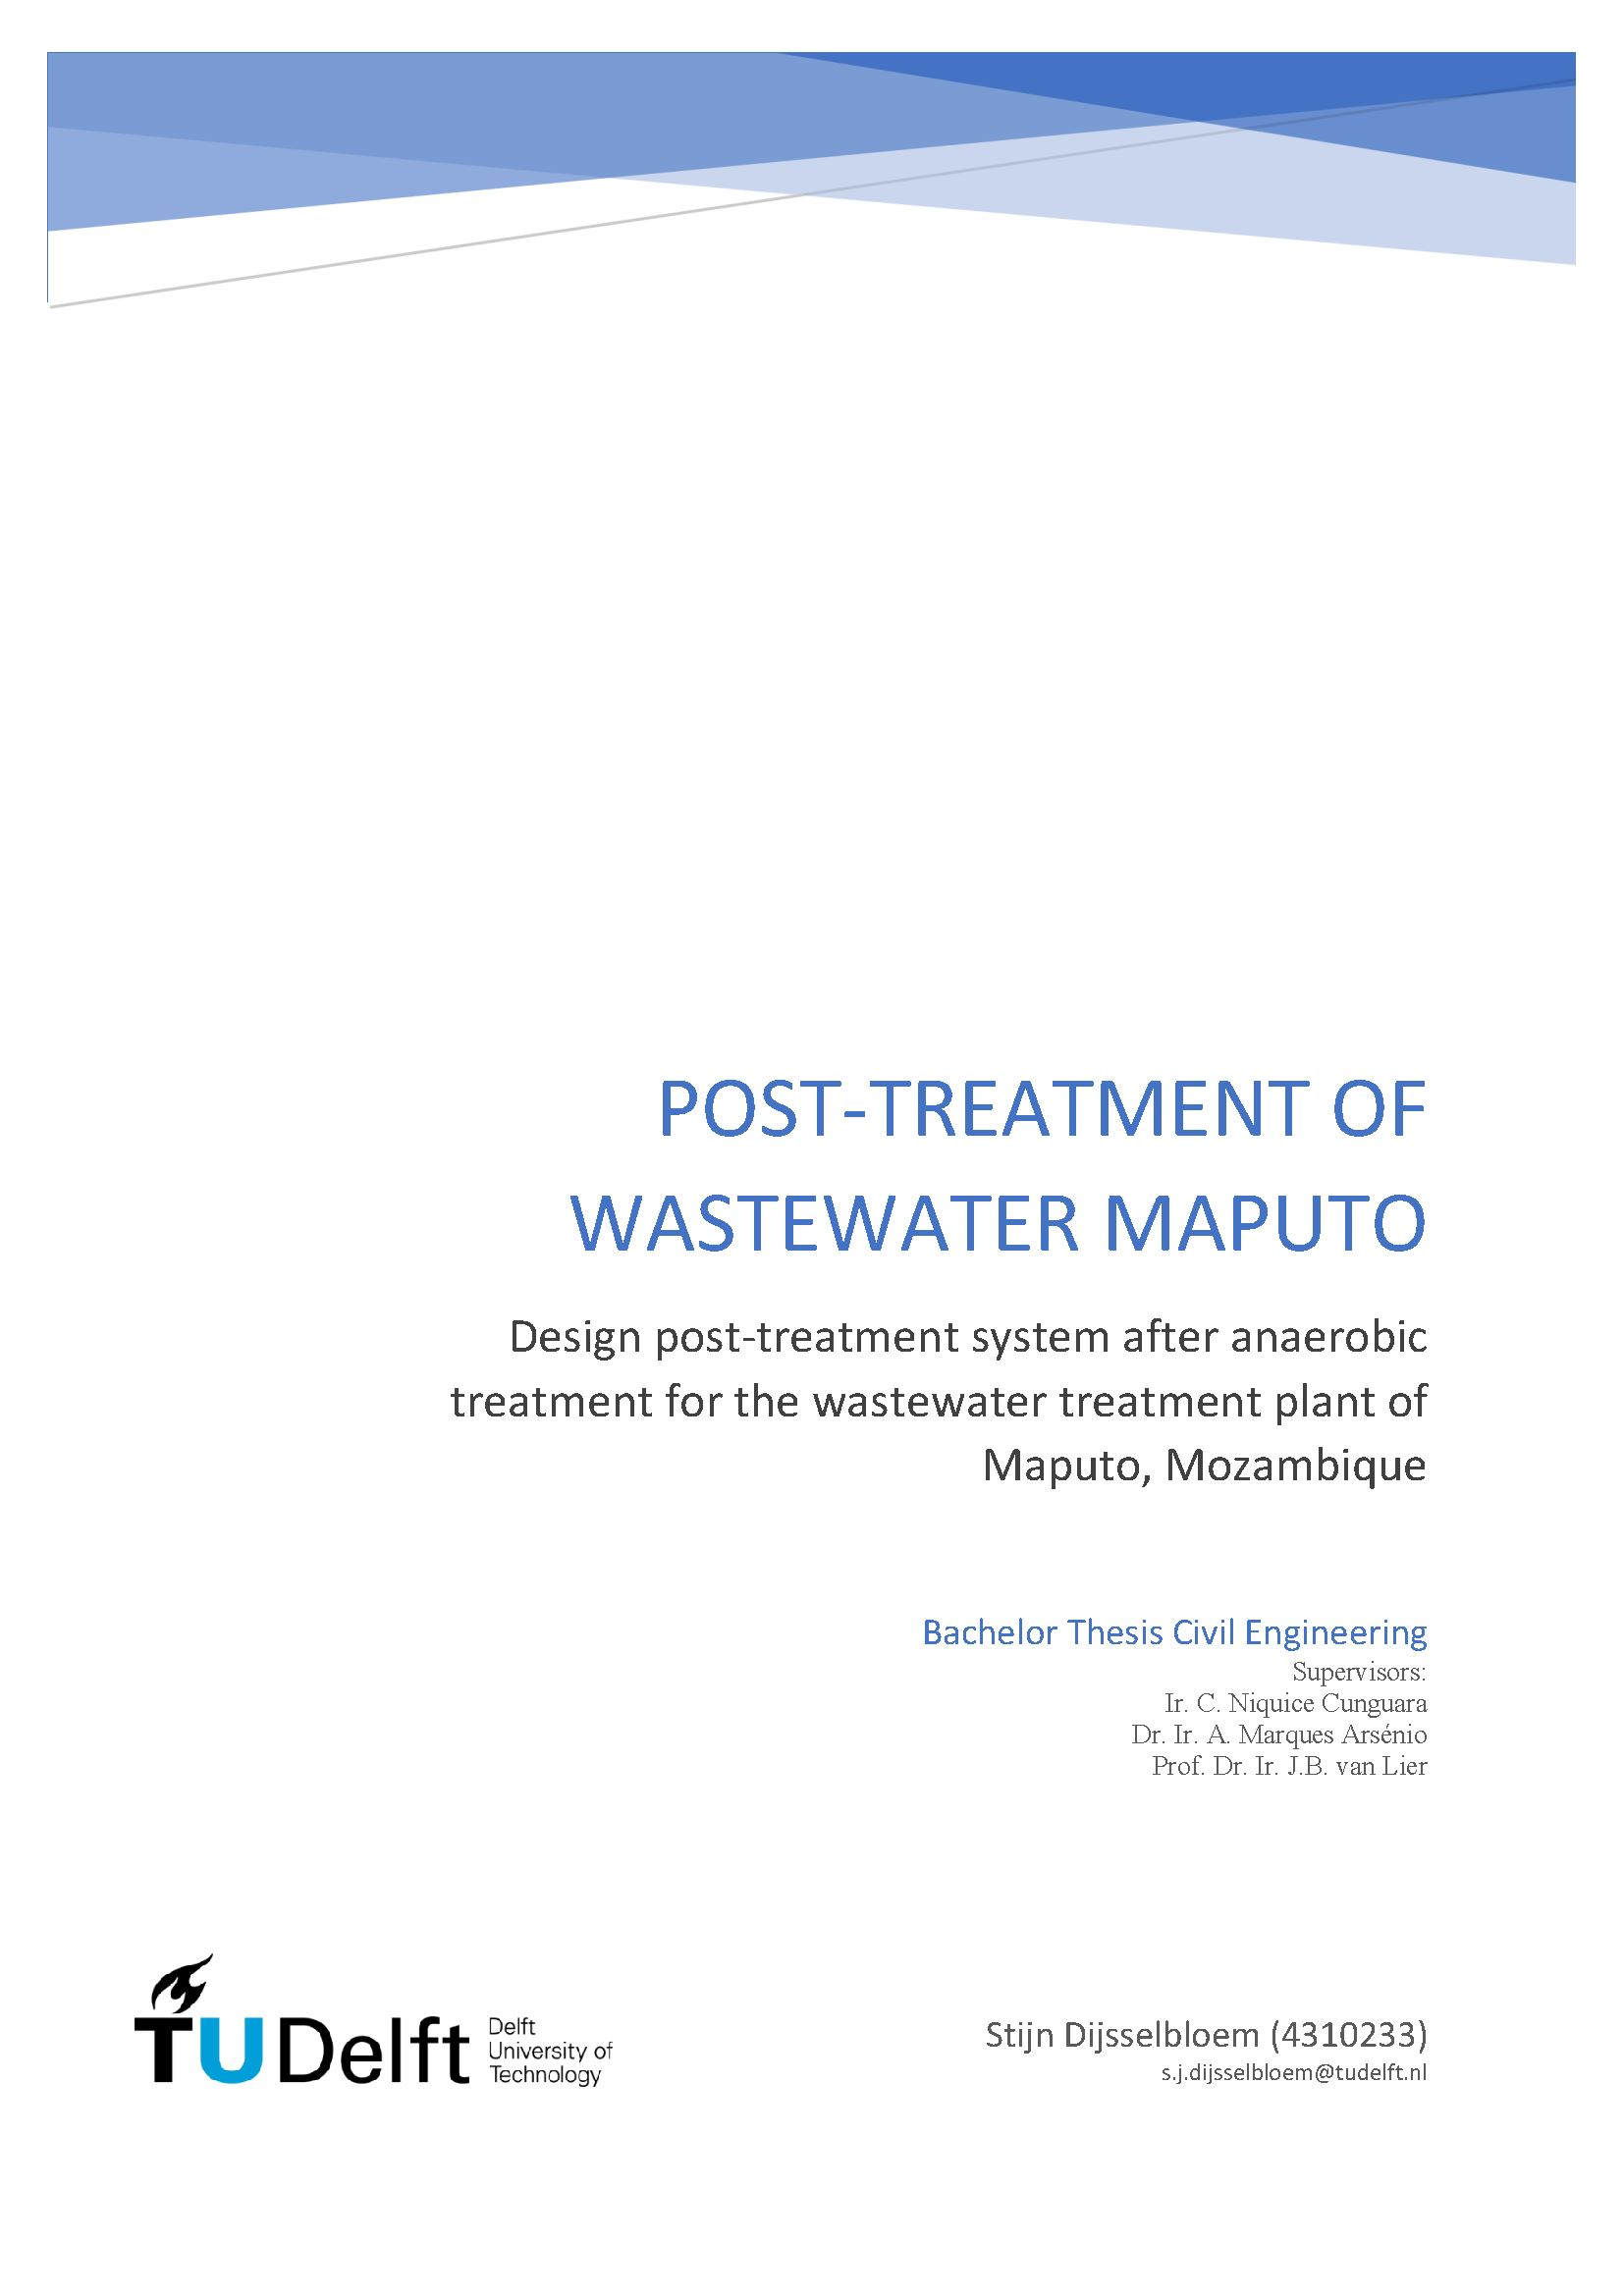 waste water treatment dissertation Wastewater treatment is performed on a variety of waste sources such as agricultural, residential, and industrial waste many bacteria such as nitrsomonas, nitrobacter and paracoccus are important players in the treatment of industrial and sewage waste.